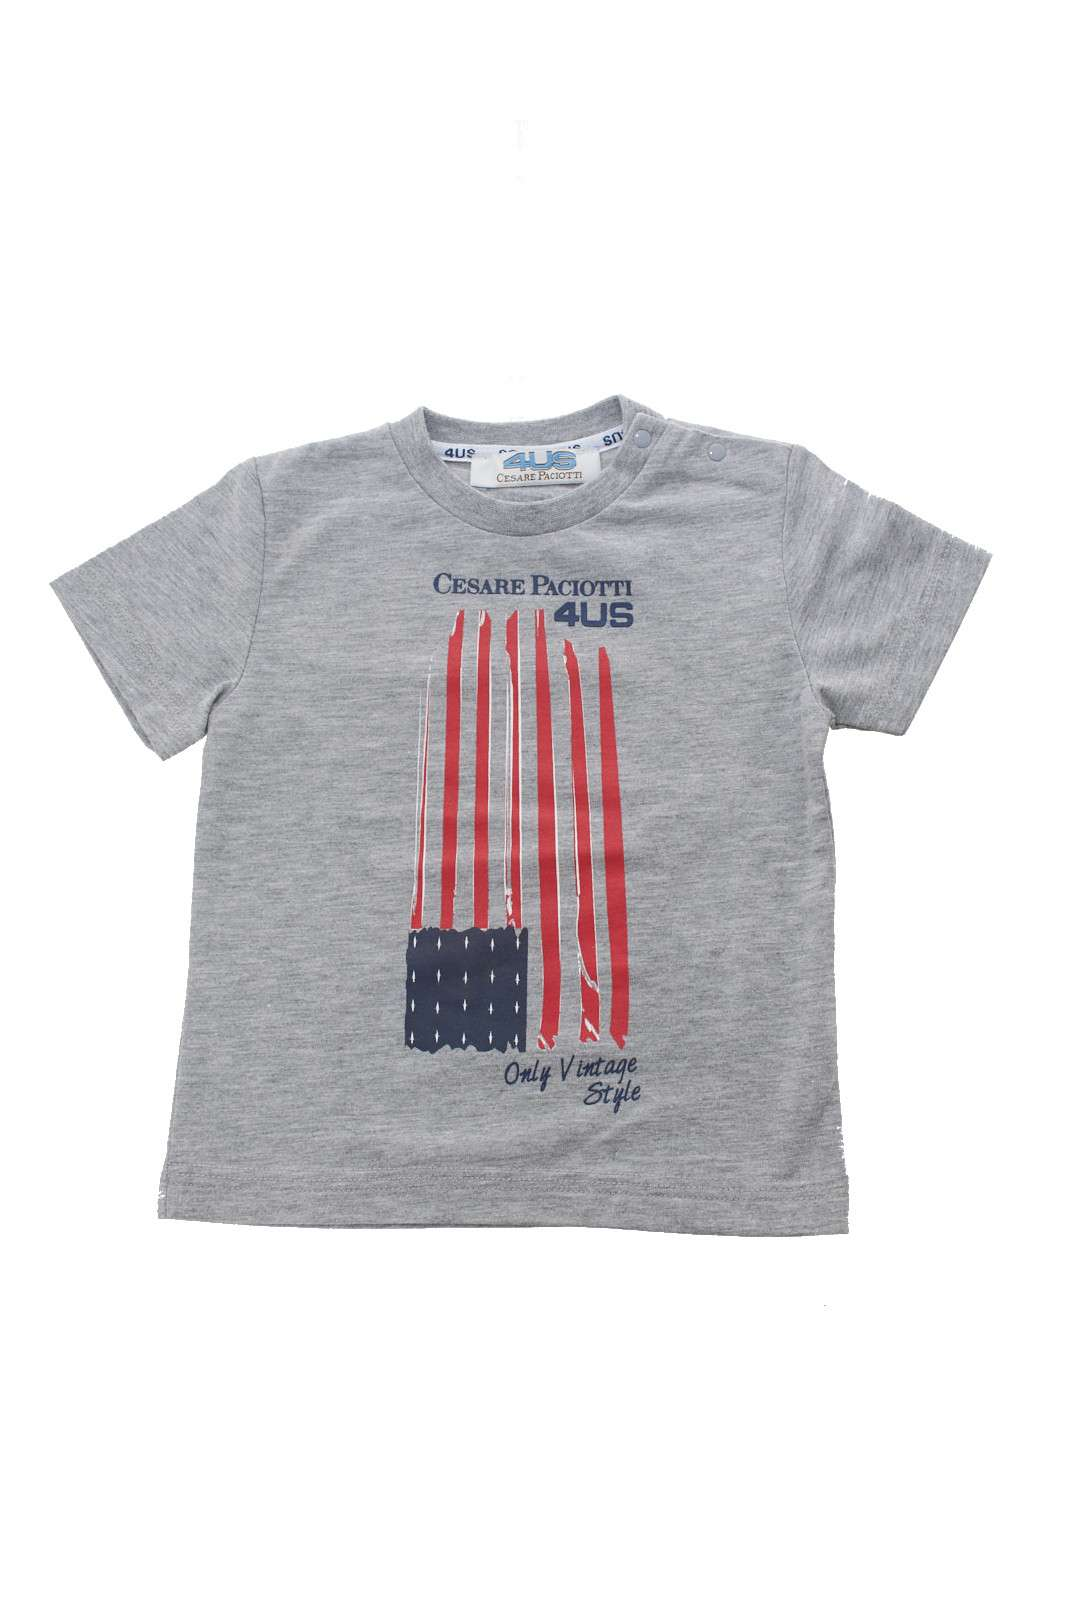 https://www.parmax.com/media/catalog/product/a/i/PE-outlet_parmax-t-shirt-bambino-Cesare-Paciotti-TSP506-A.jpg